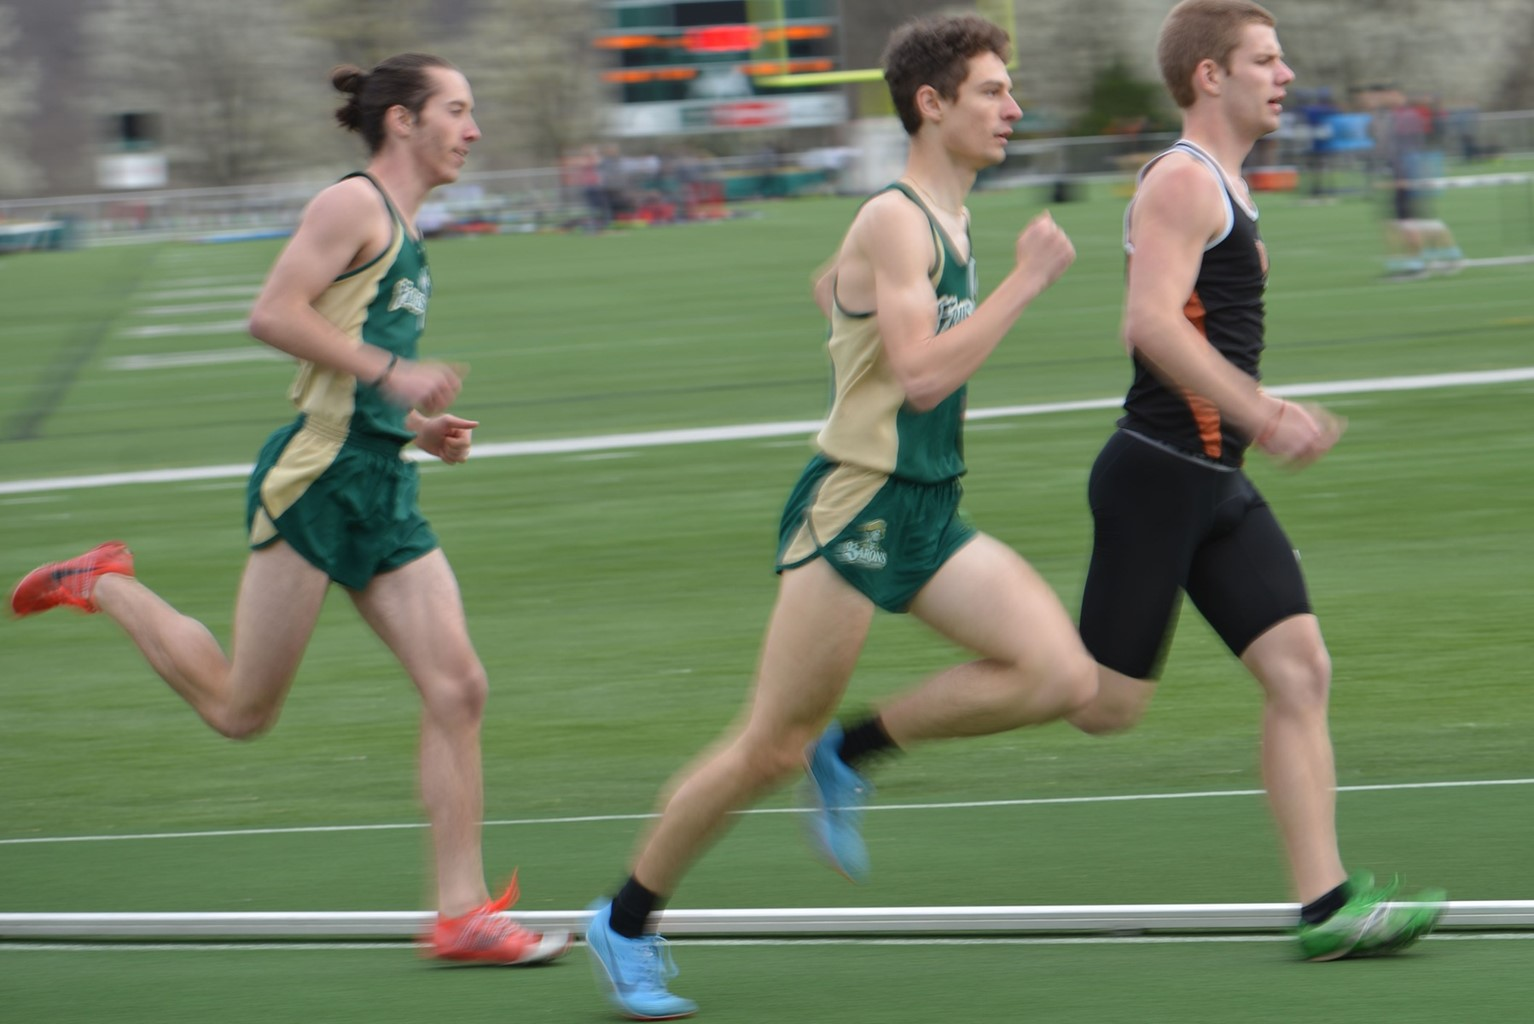 Men's Track and Field - Franciscan University of Steubenville